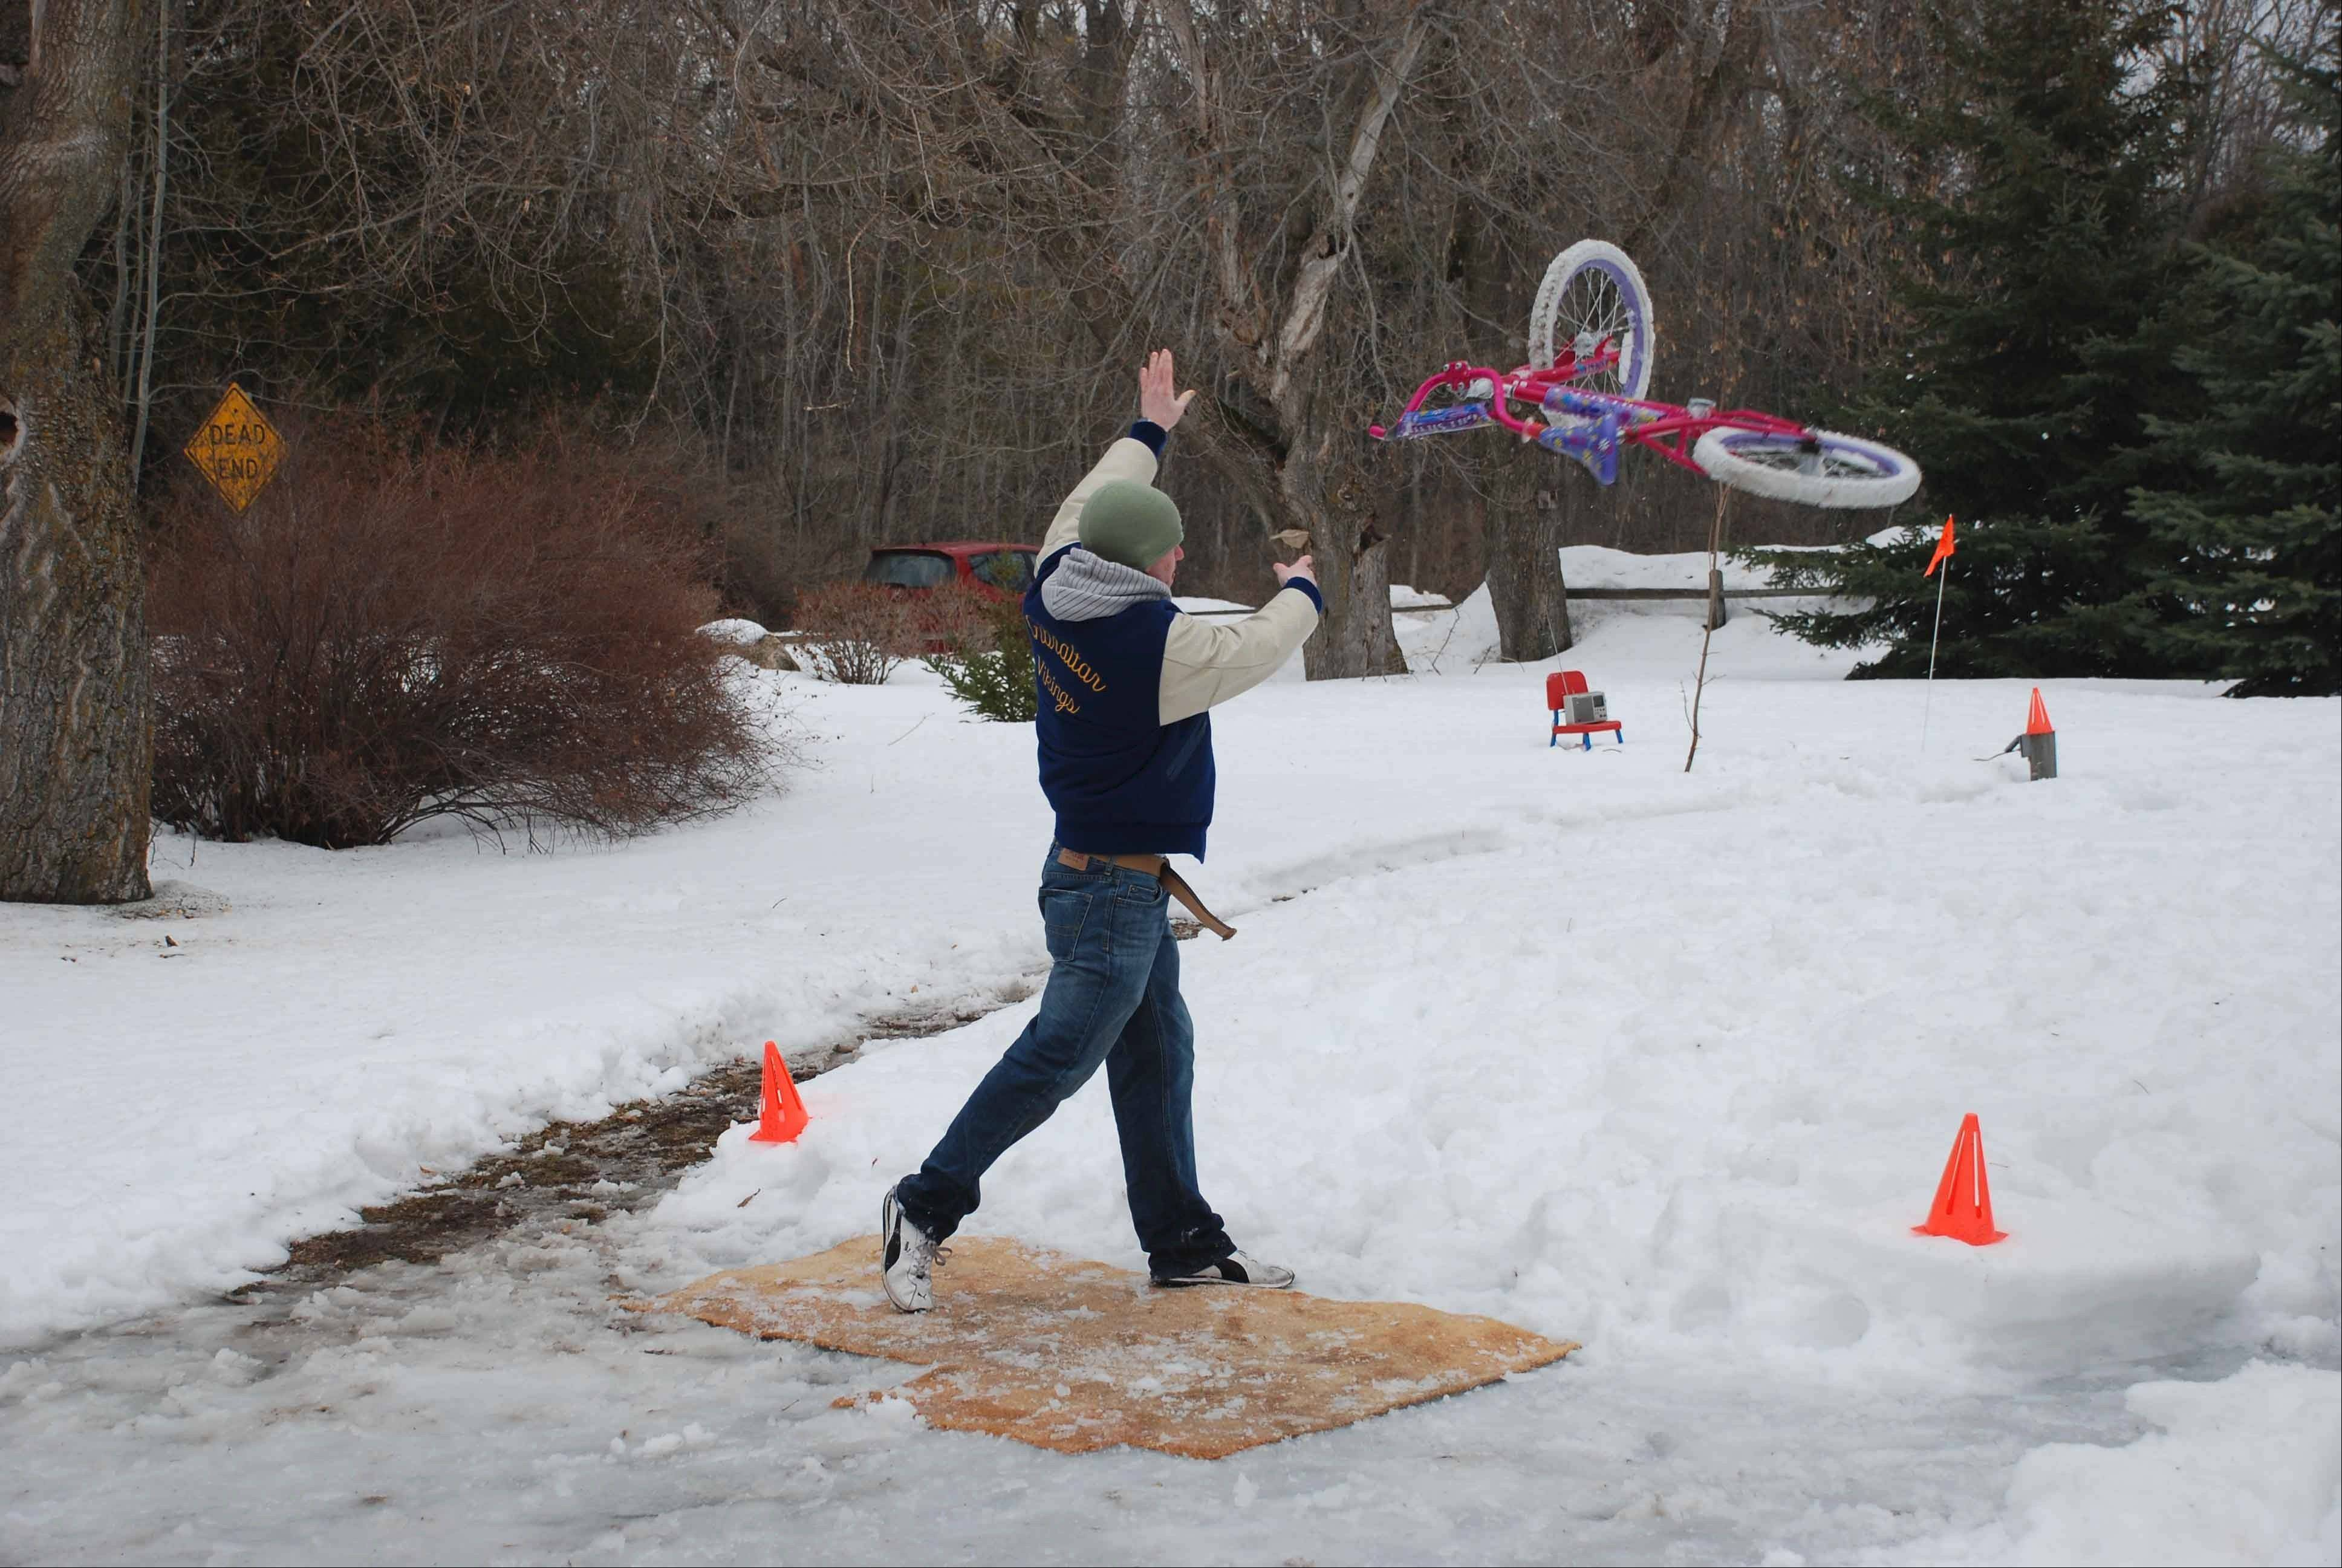 The popular bike toss is one of many fun and quirky games offered at Fish Creek's annual Winter Festival.